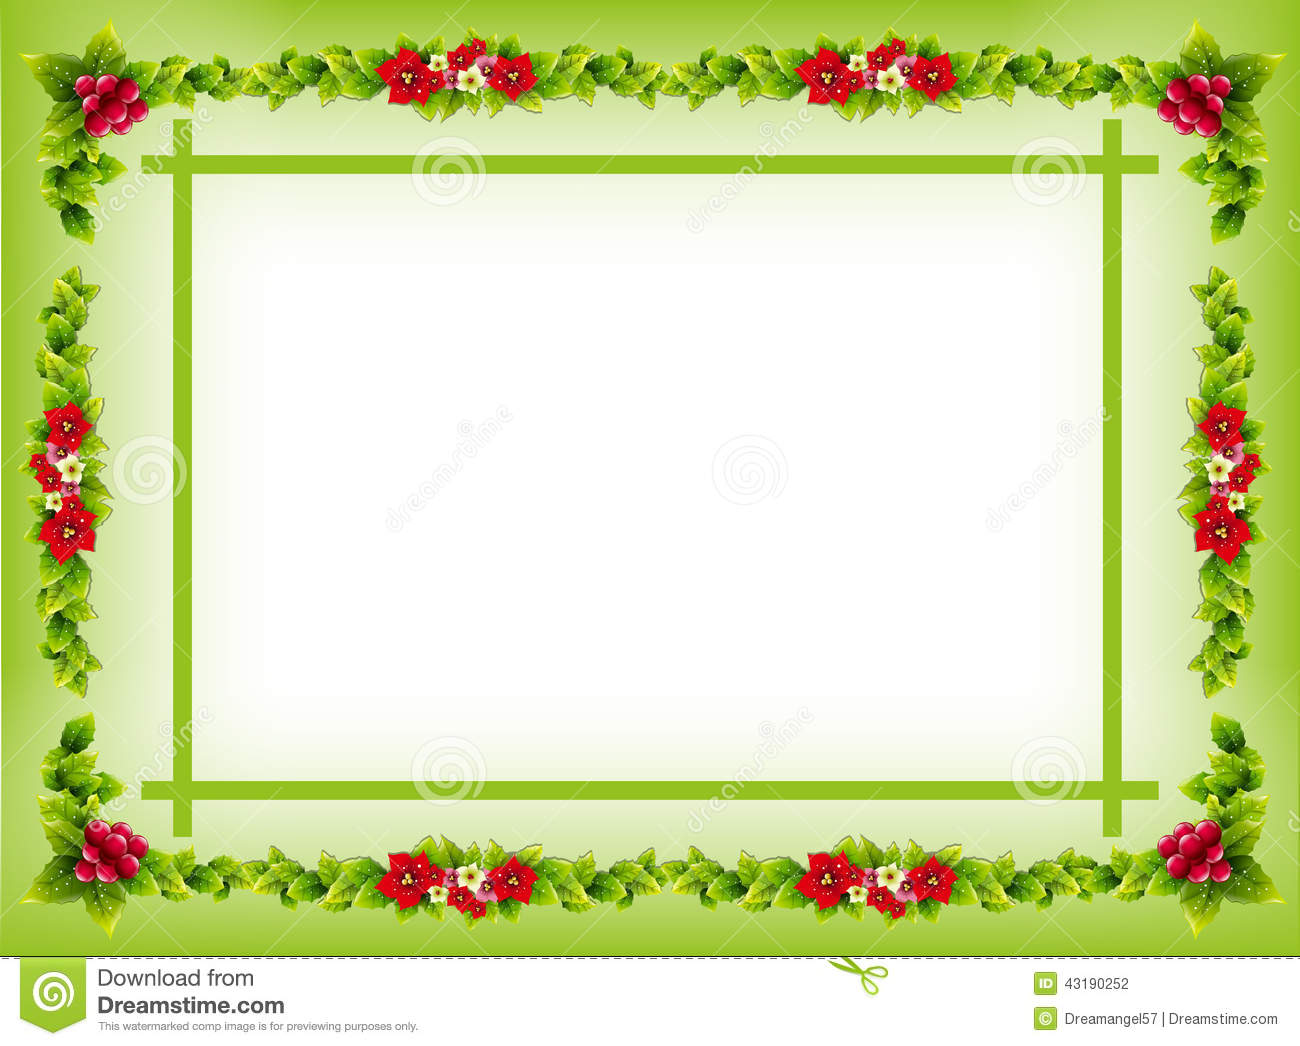 Invitation Card Border/Frame Stock Illustration - Image: 43190252